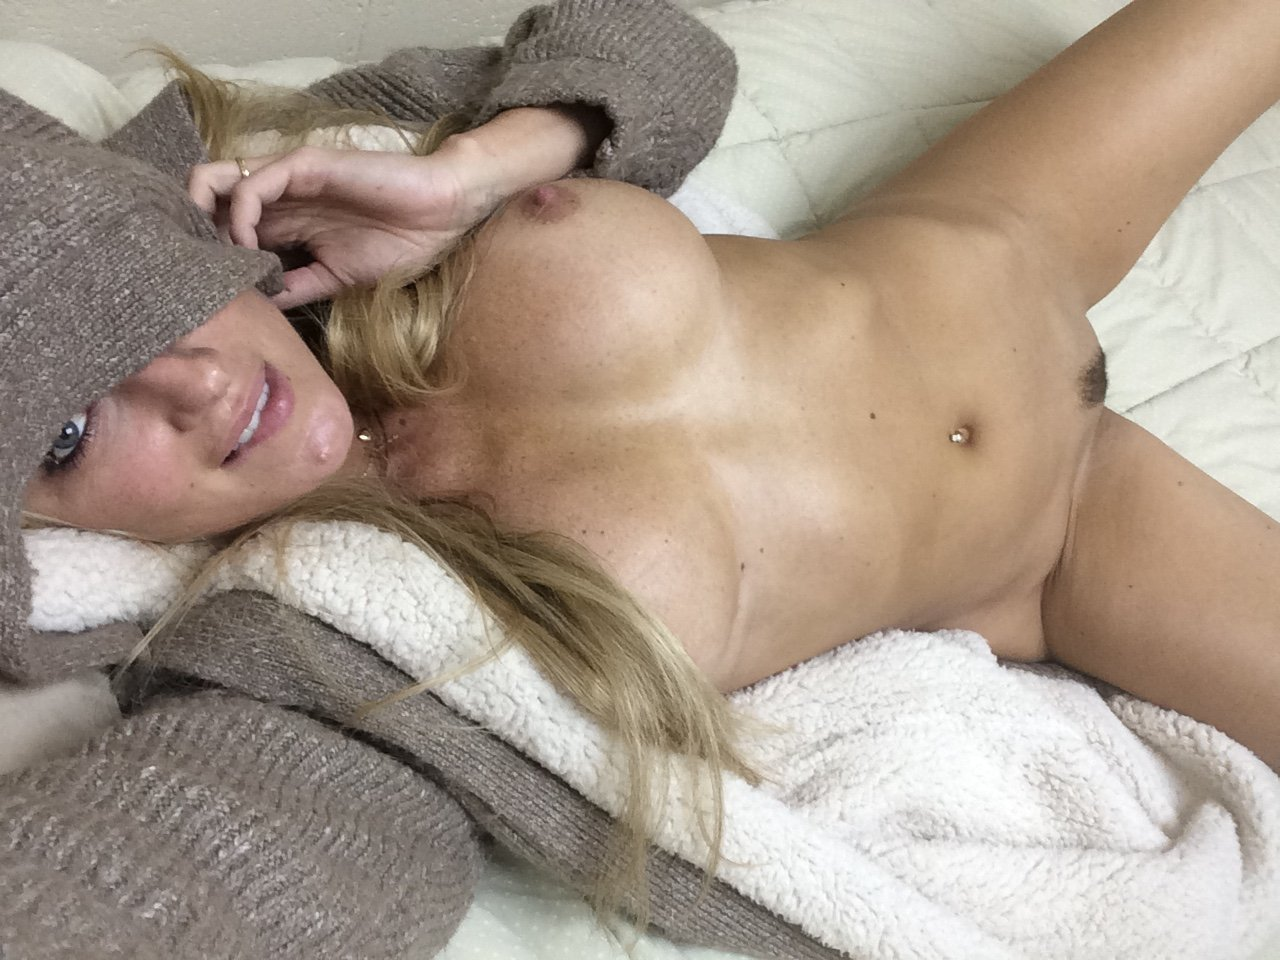 Amber Nichole pussy showing